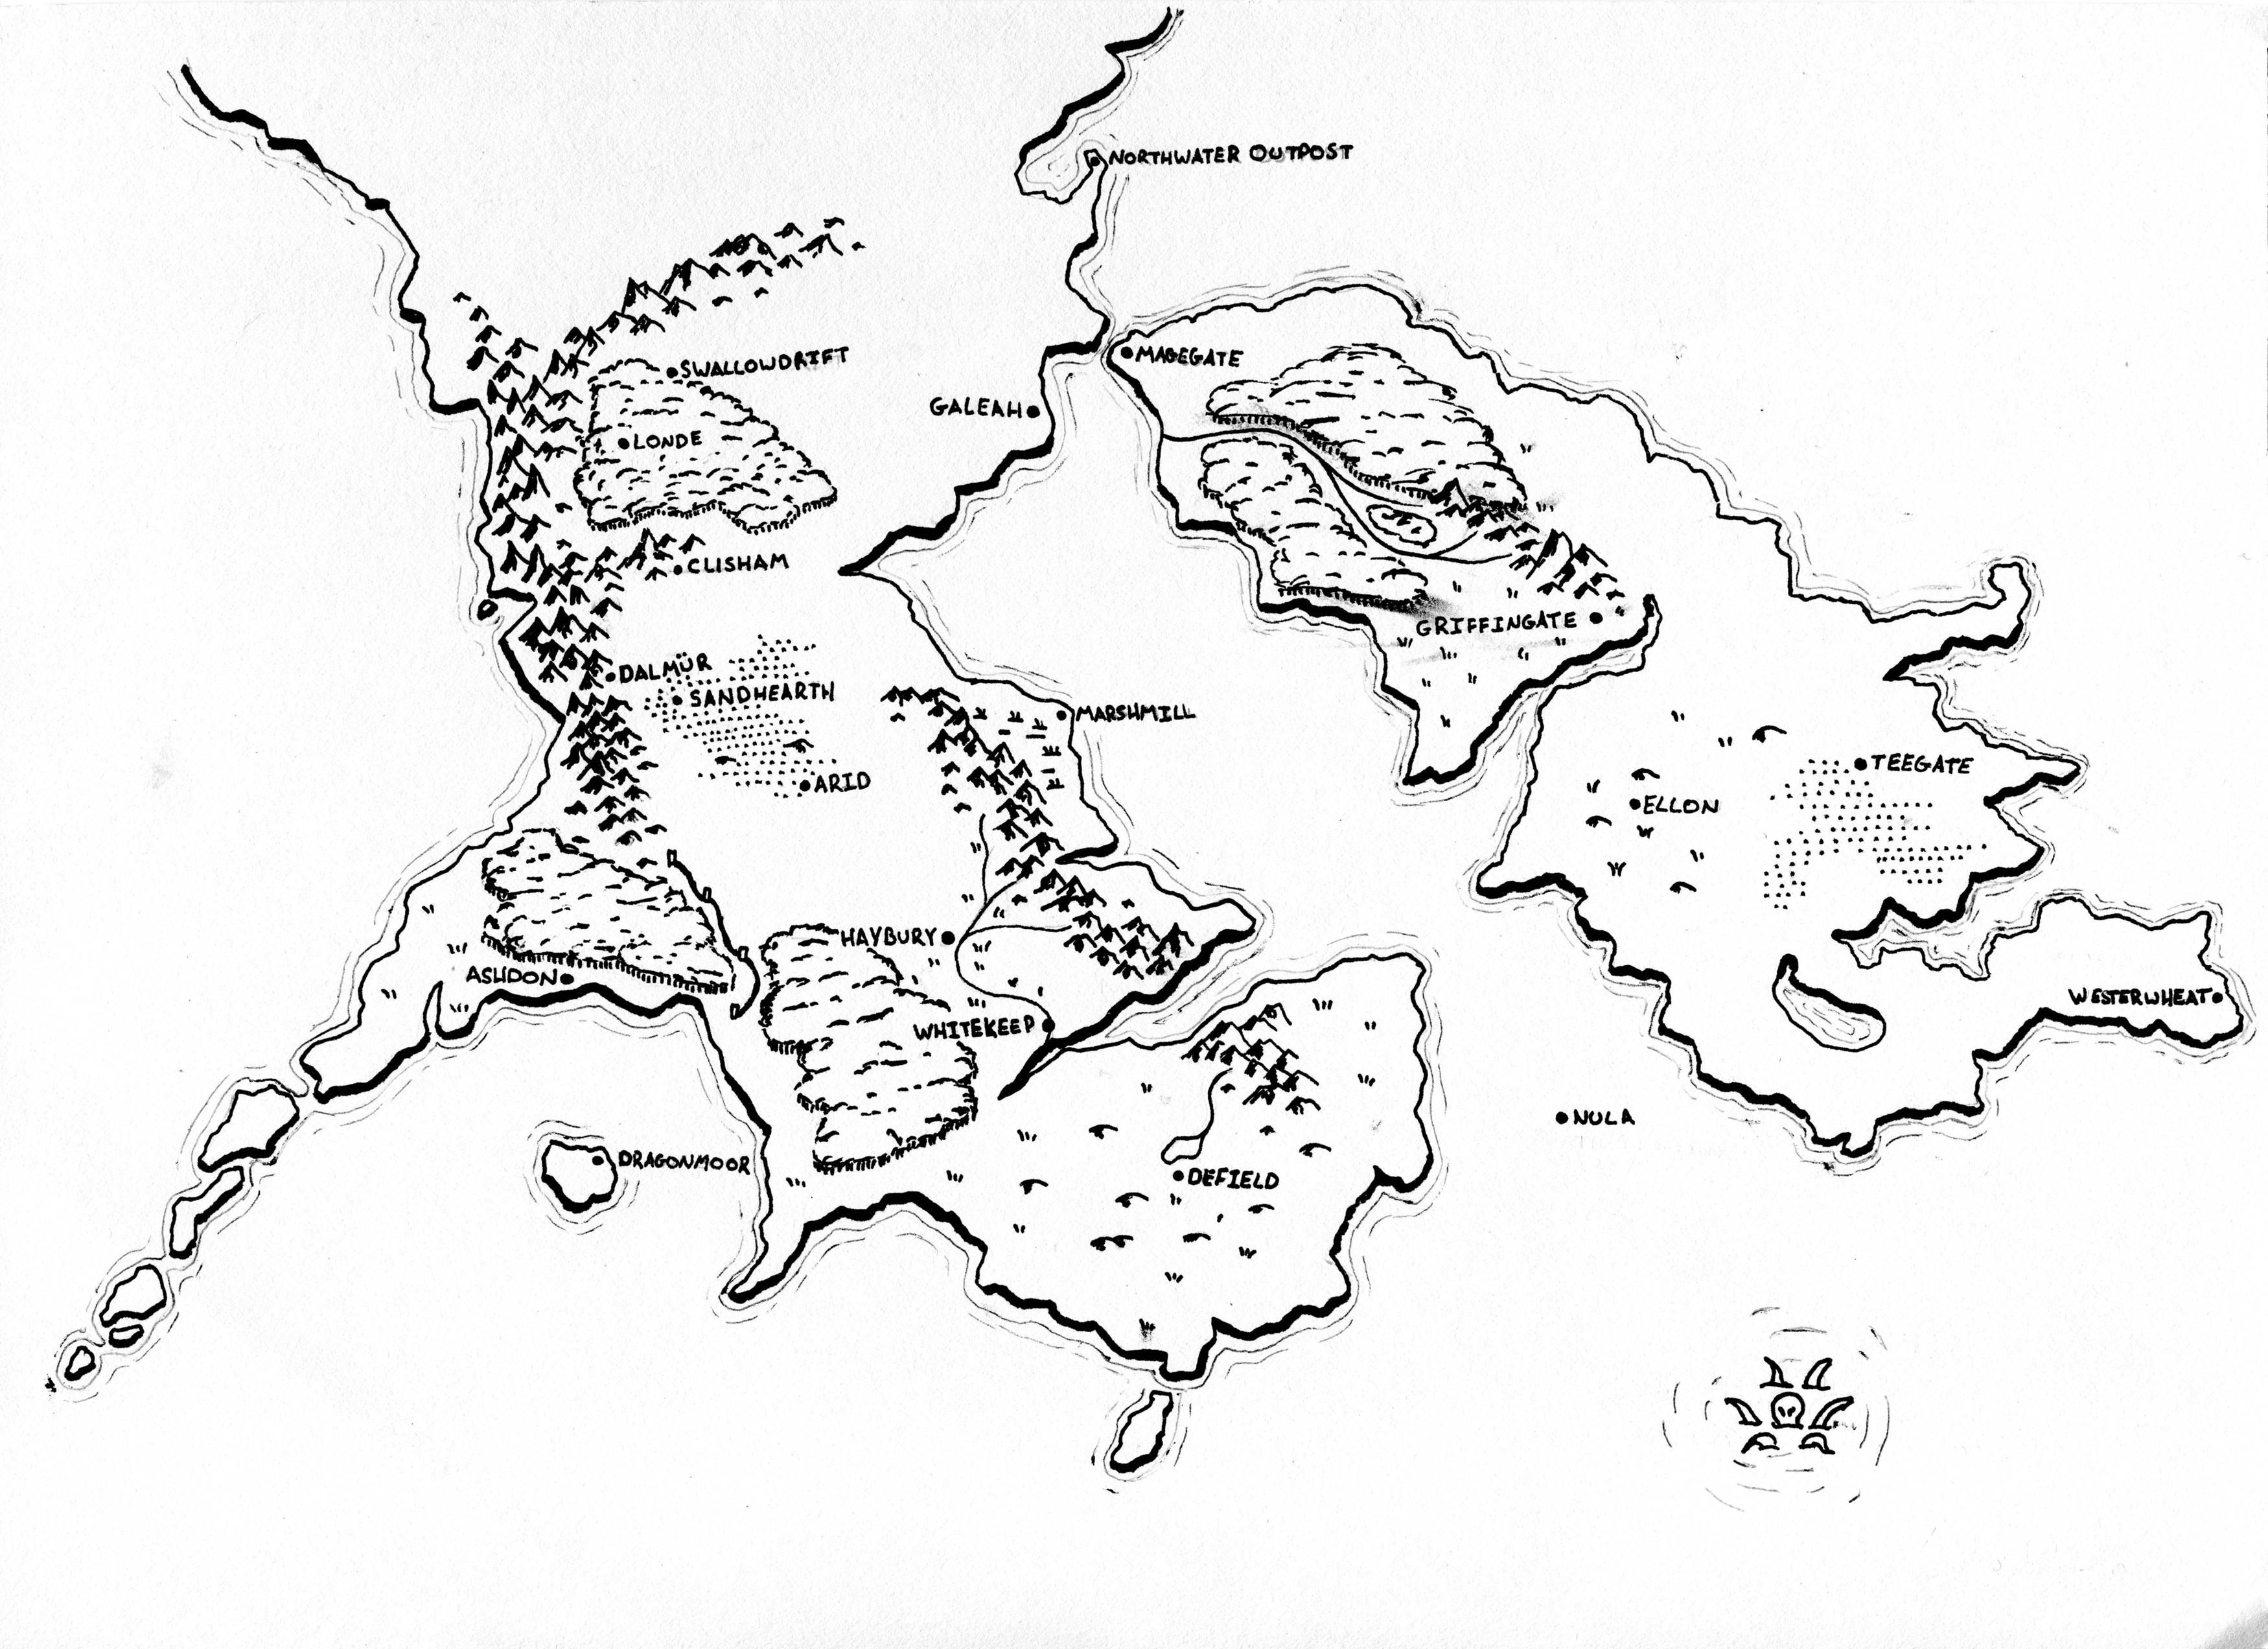 Homebrew campaign map | Maps in 2019 | Map, Fantasy map, Drawings